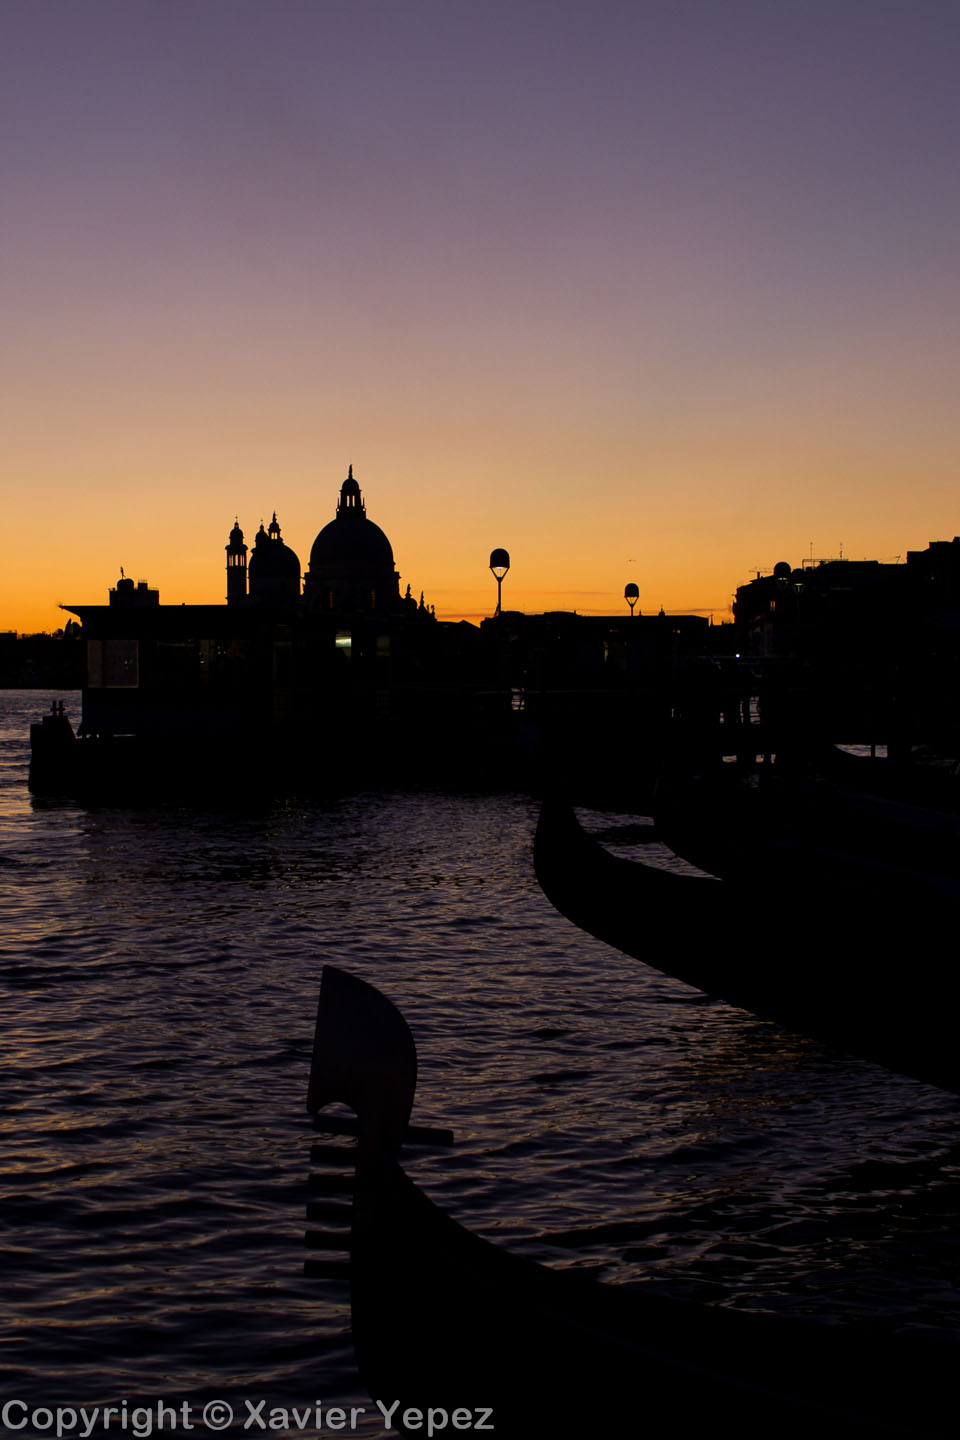 Silhouettes of gondolas and a church in a sunset in Venice, Italy